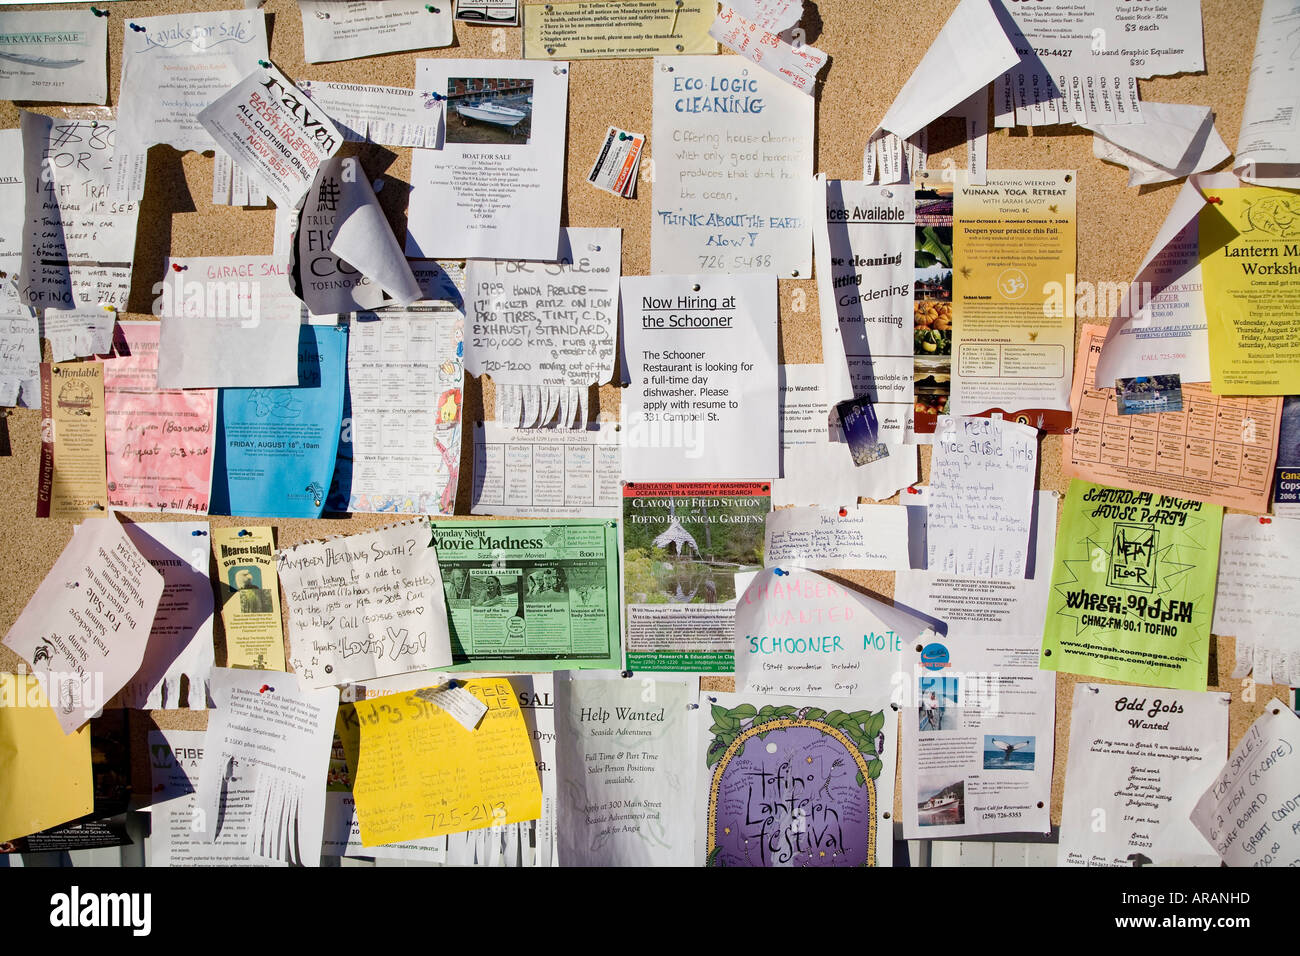 Notices and messages pinned to cork board Tofino Vancouver island Canada - Stock Image